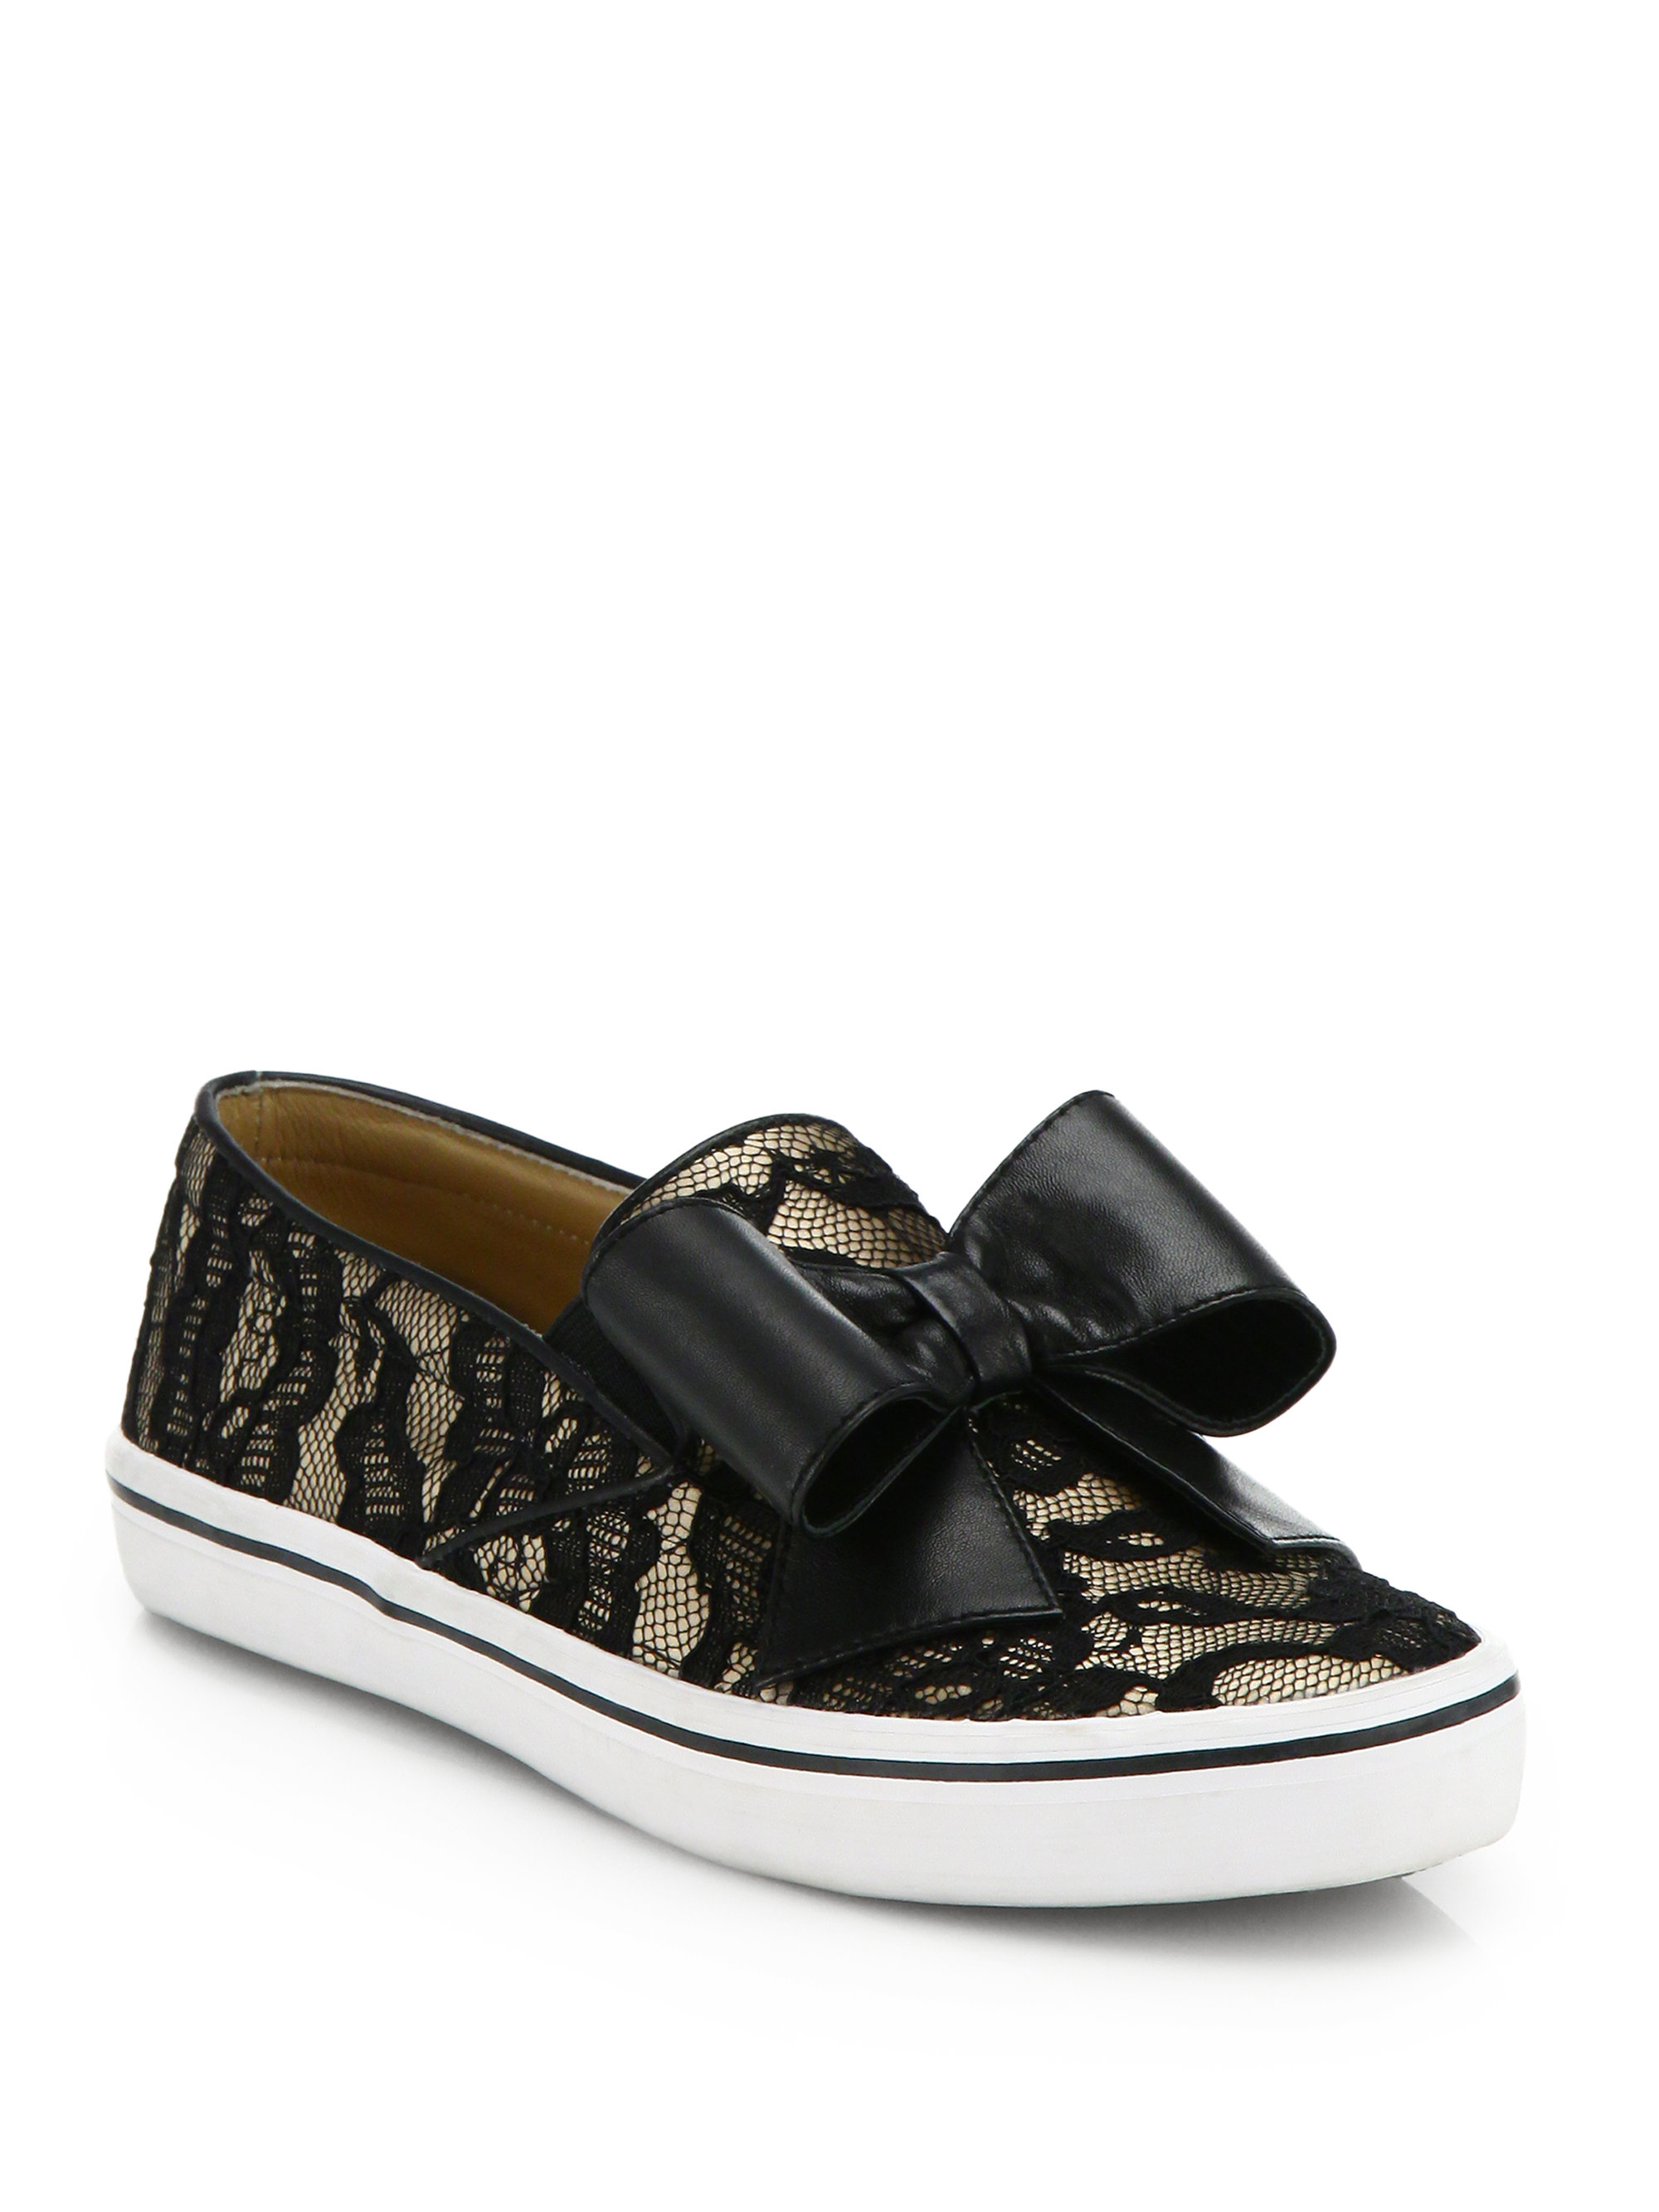 kate spade delise leopard print haircalf sneakers in animal leopard lyst. Black Bedroom Furniture Sets. Home Design Ideas